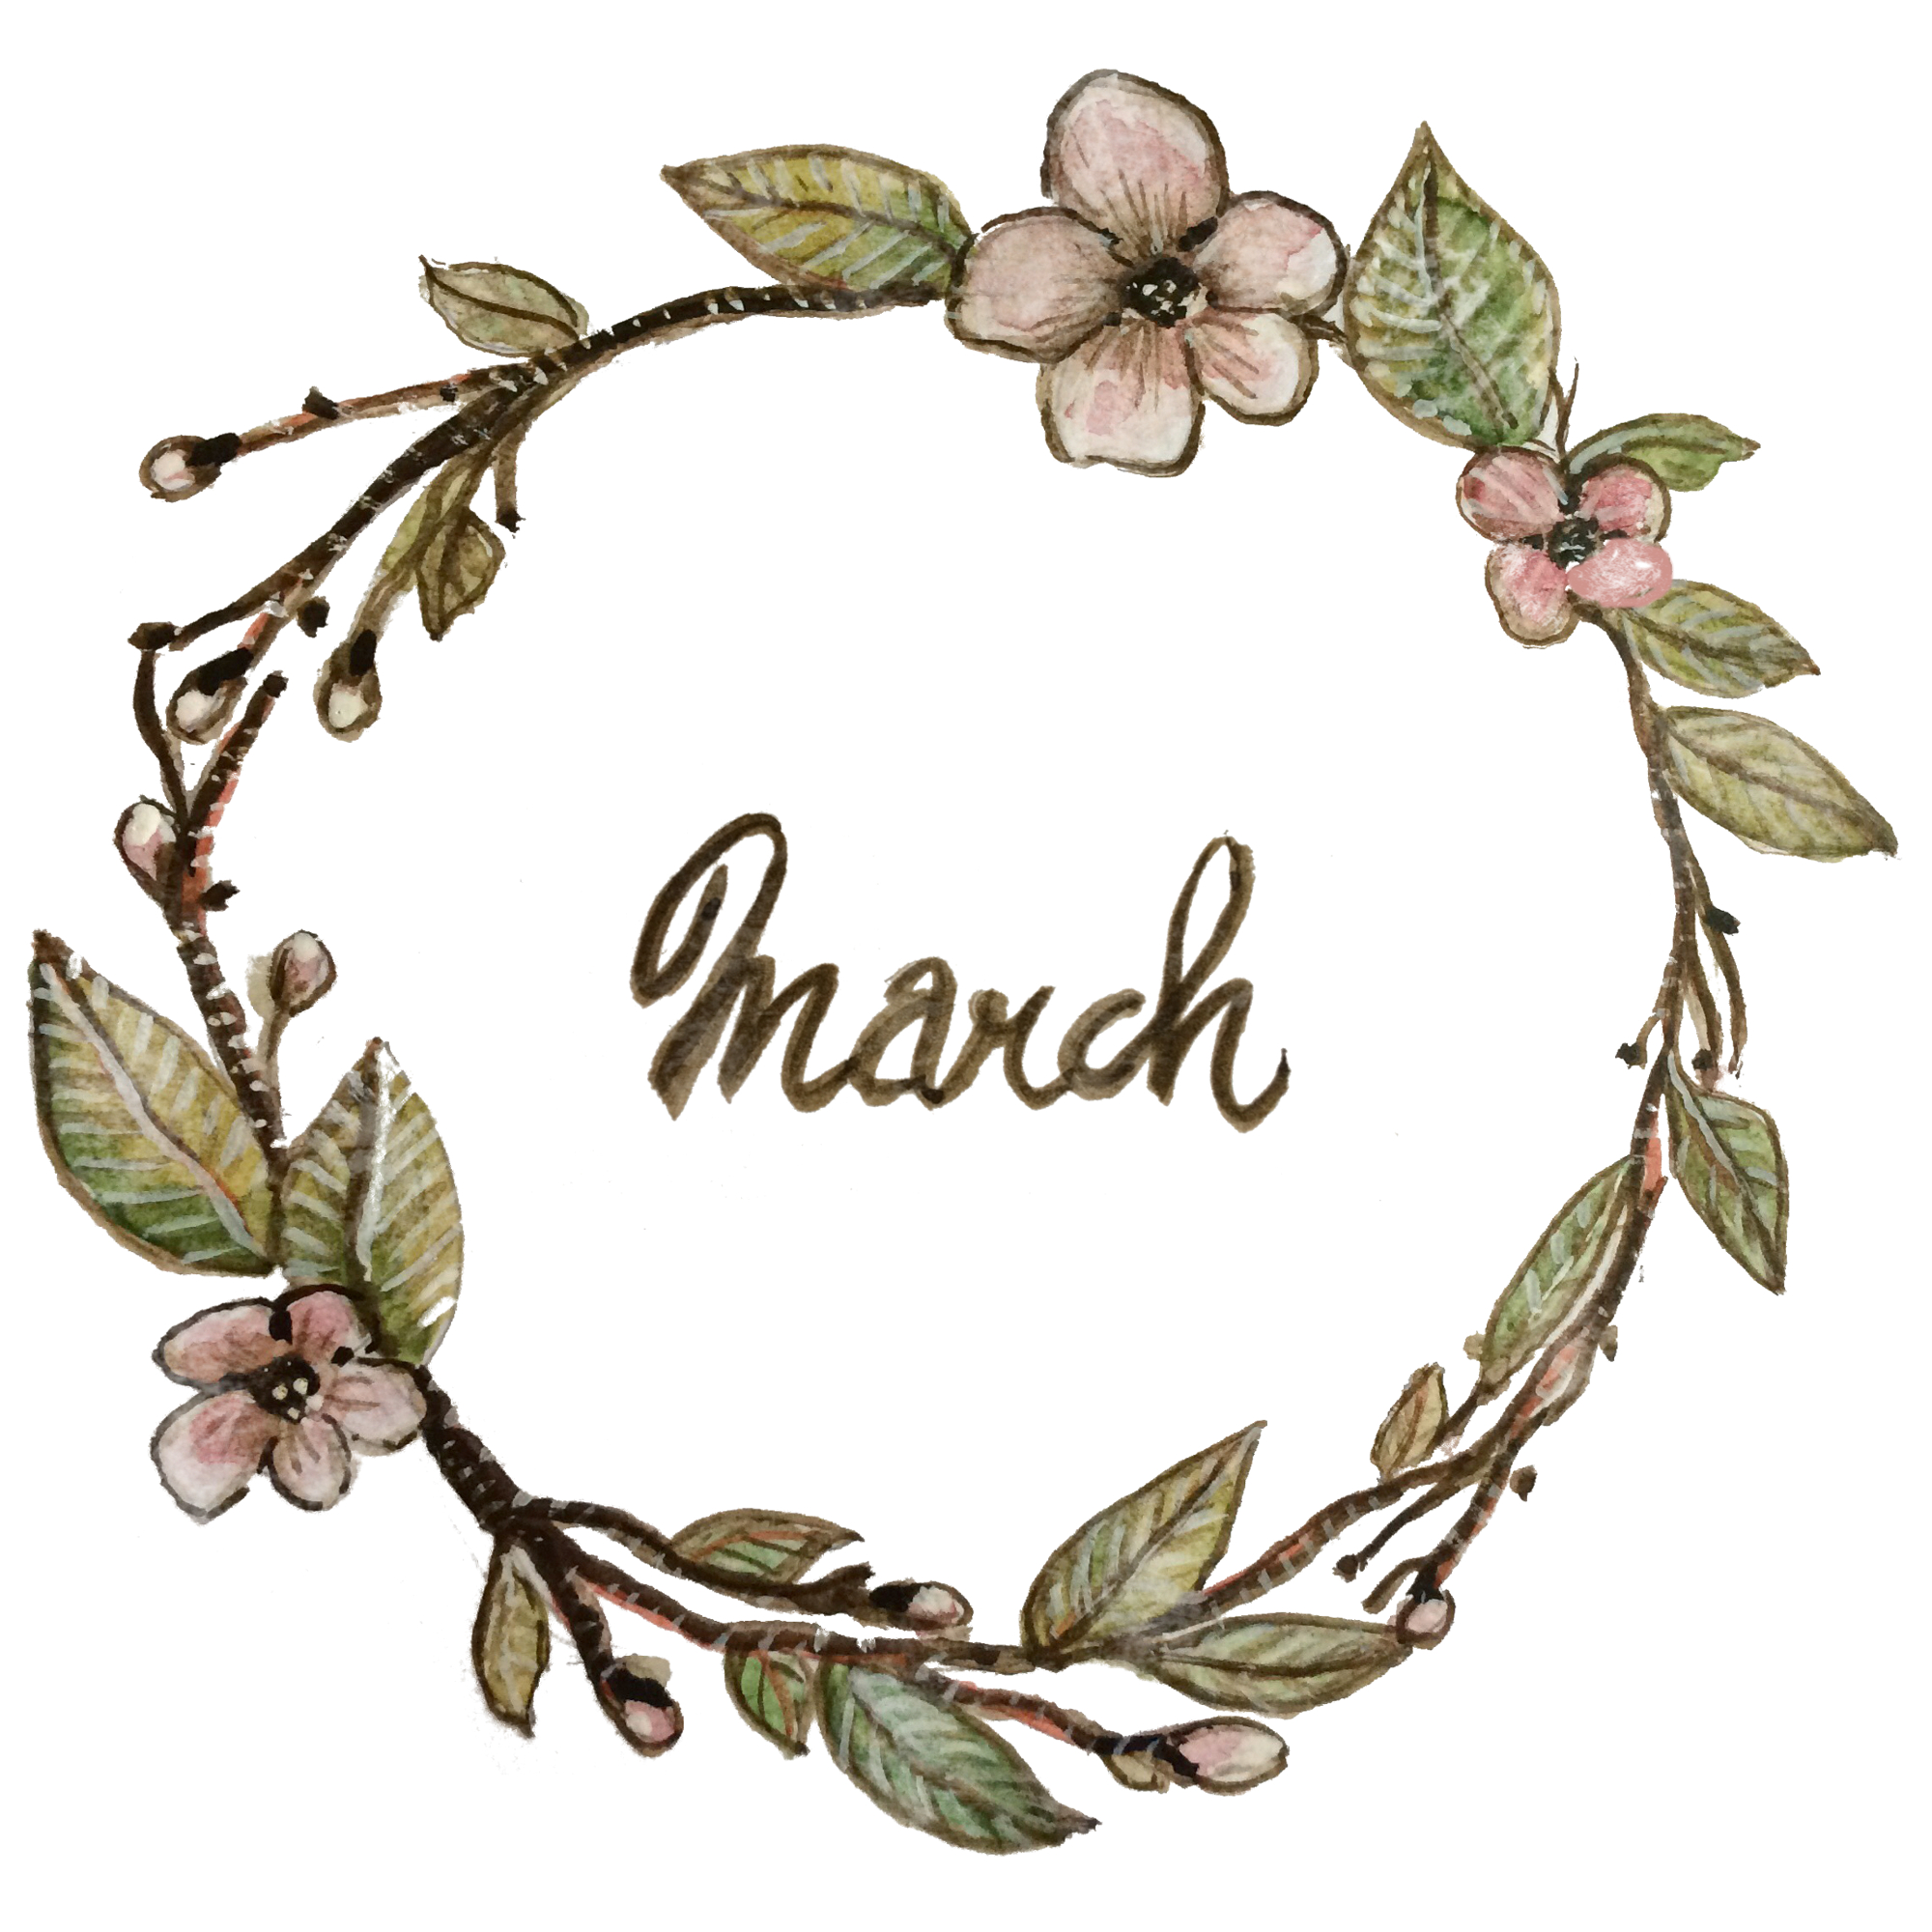 March by Emilie Maguin